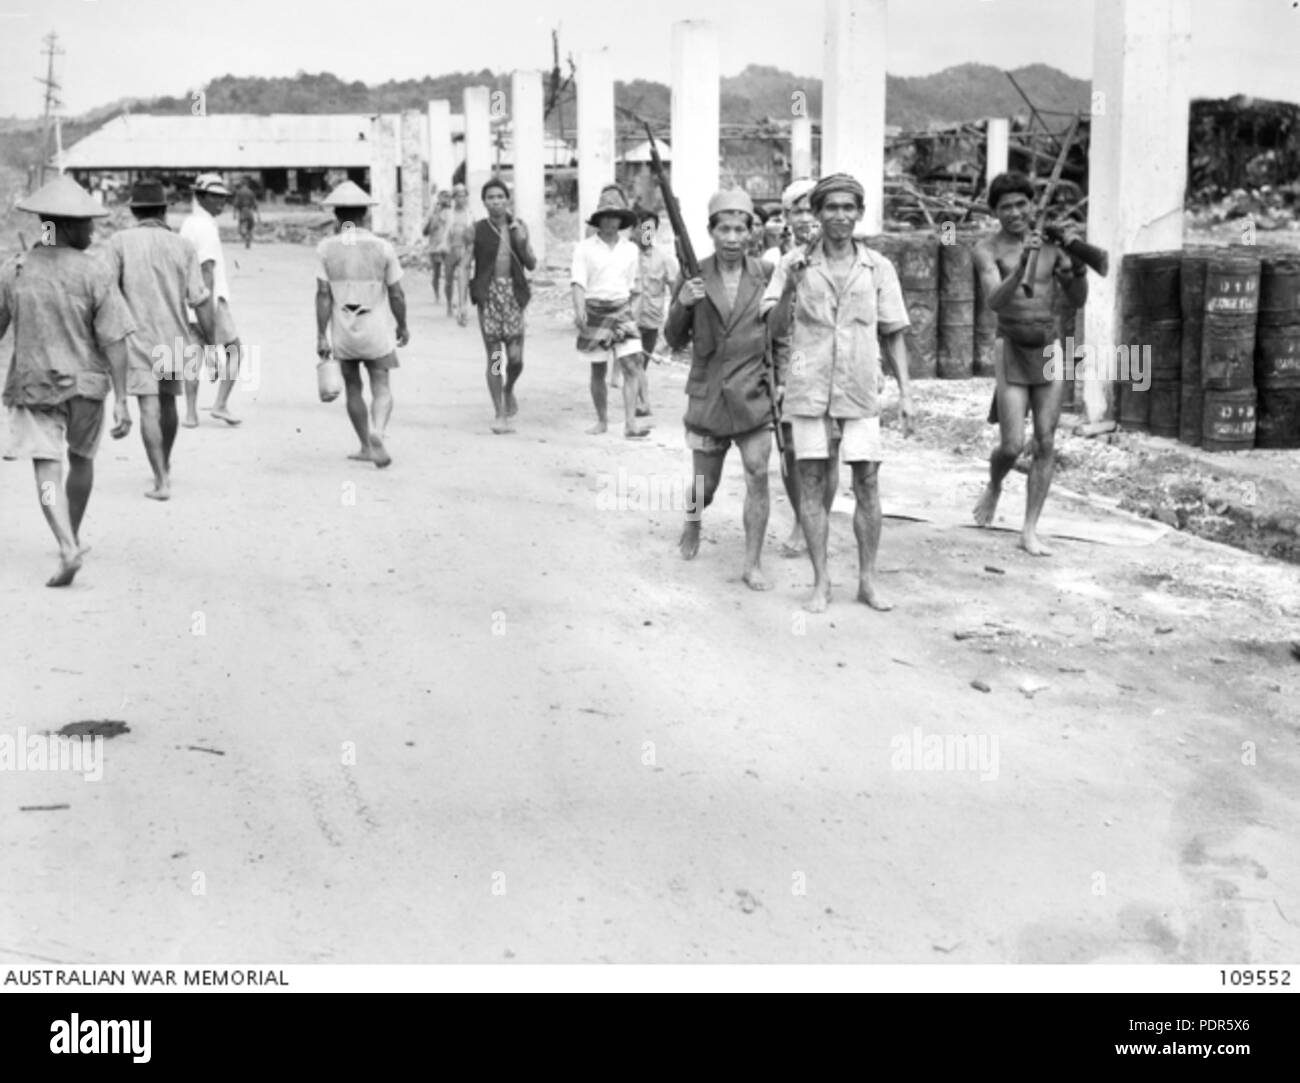 67 Indigenous peoples armed with Japanese rifles walking along a Brunei street - Stock Image